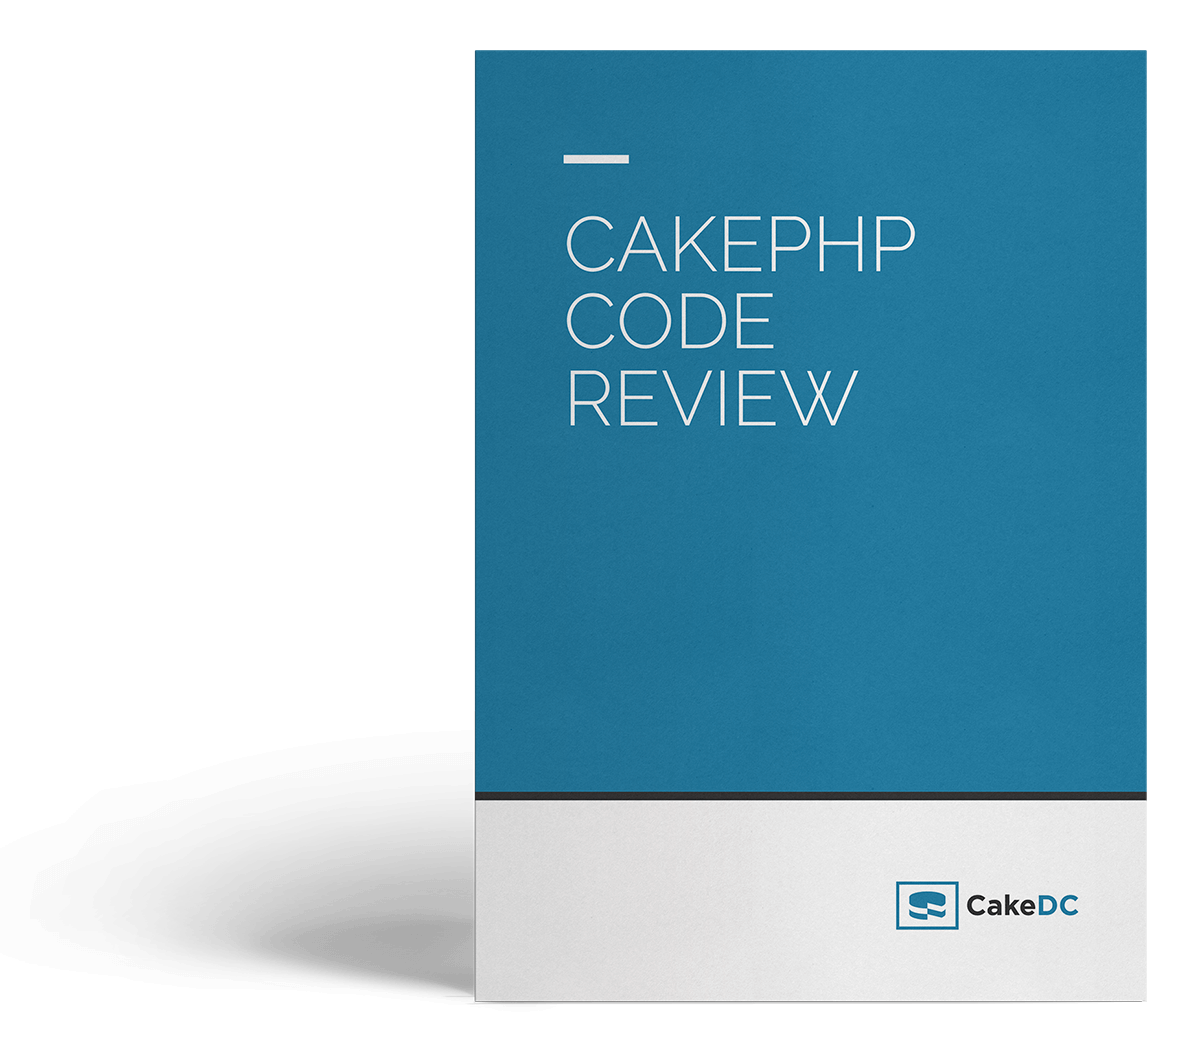 CakePHP Code Review